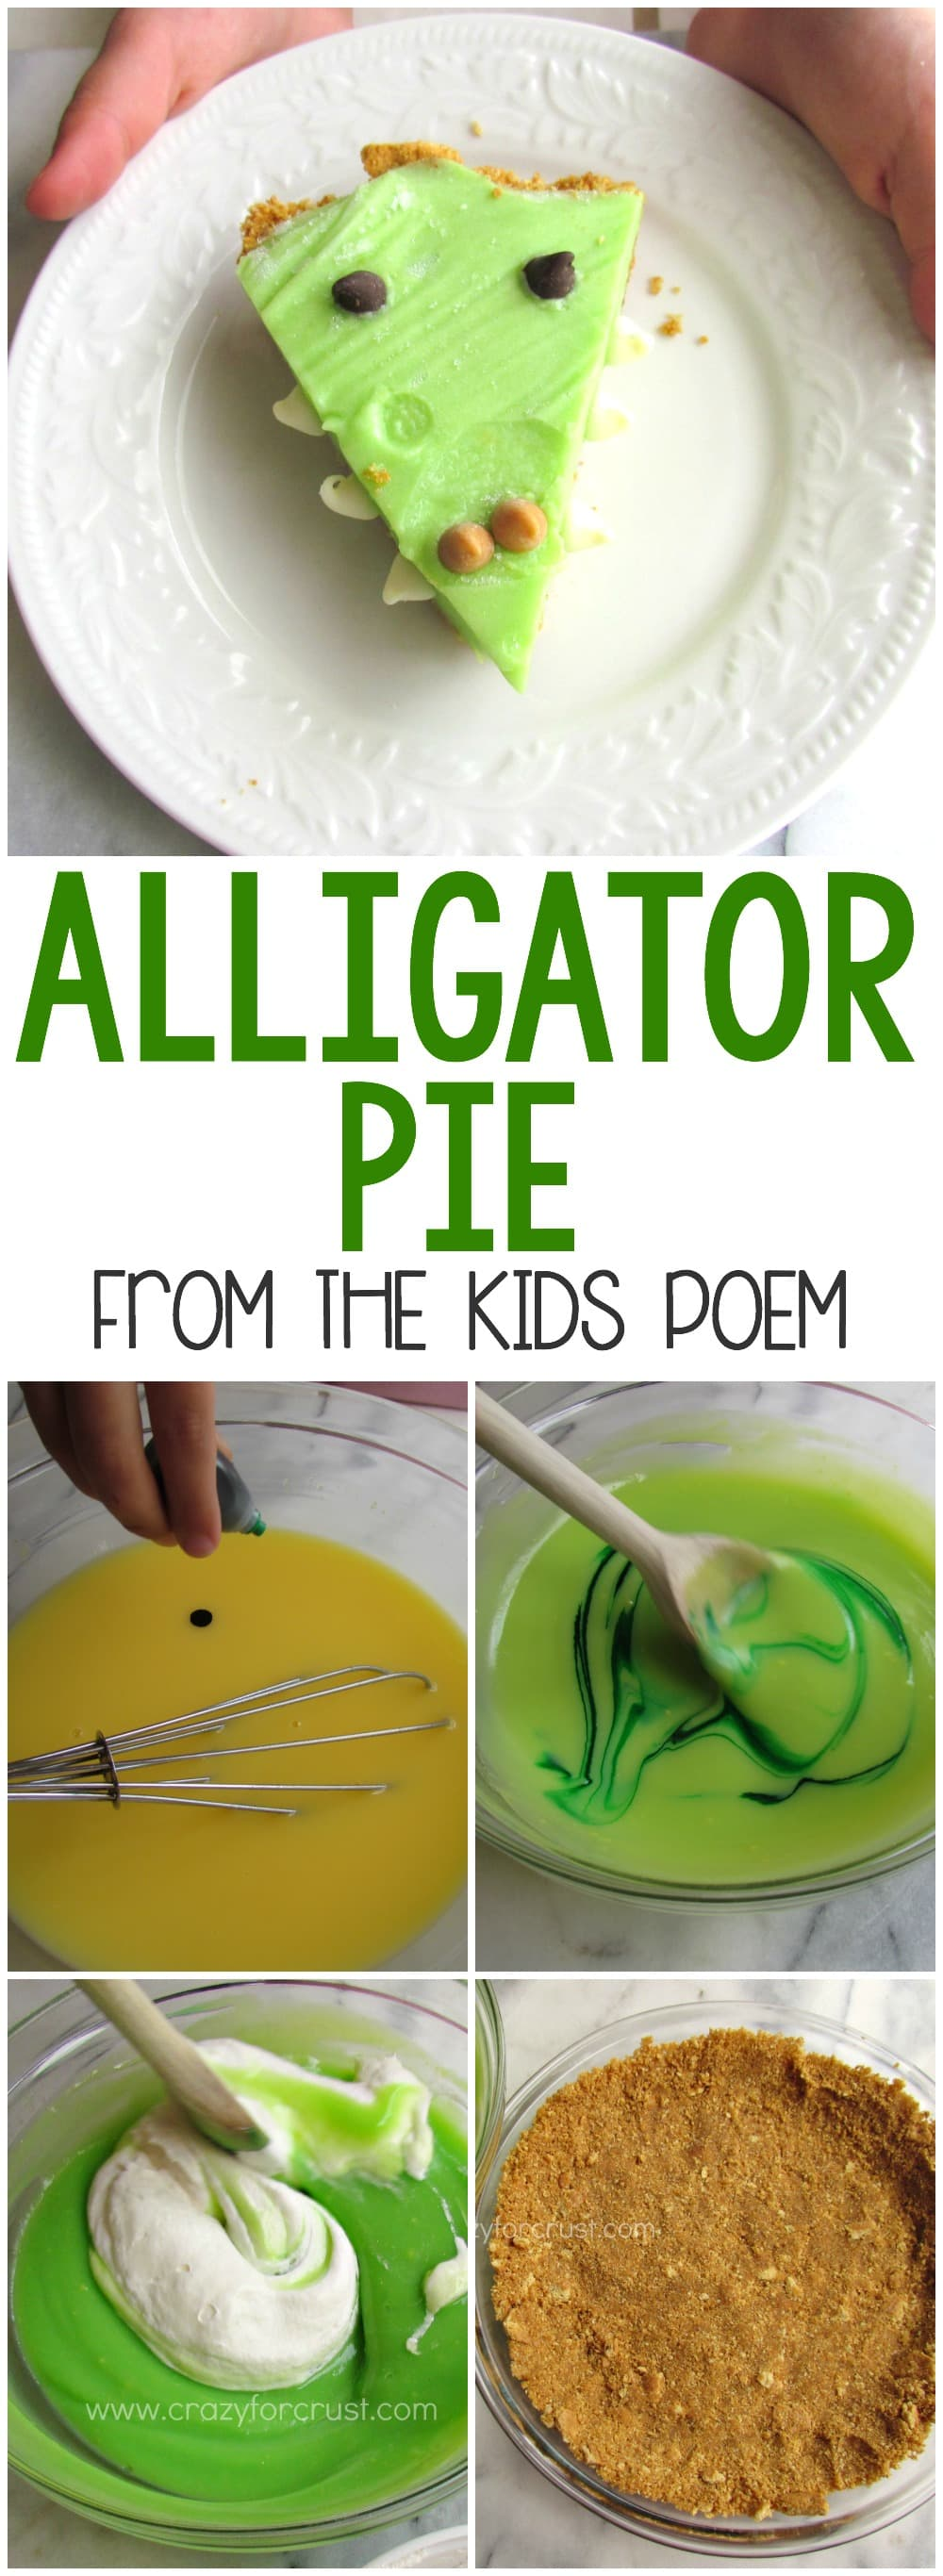 Alligator Pie - this easy no-bake pie recipe is from the popular kids poem! The kids can make this themselves and it's a fun way to teach the song!